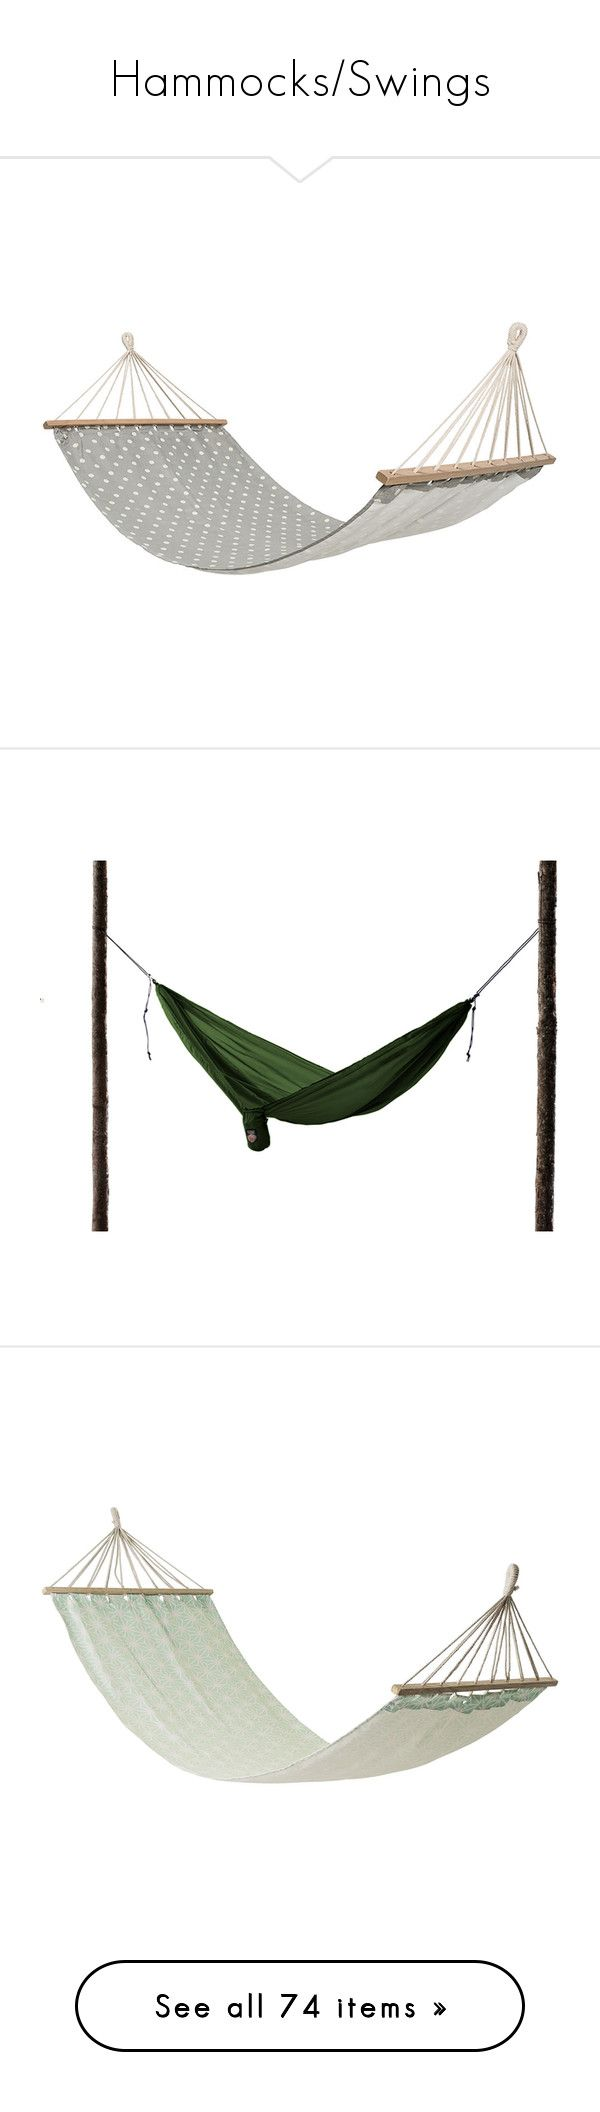 """""""Hammocks/Swings"""" by dazed-and-dreamy ❤ liked on Polyvore featuring home, outdoors, patio furniture, hammocks & swings, fillers, grey, outdoor hammock swing, outdoor hammock, grand trunk hammock and cotton hammock"""